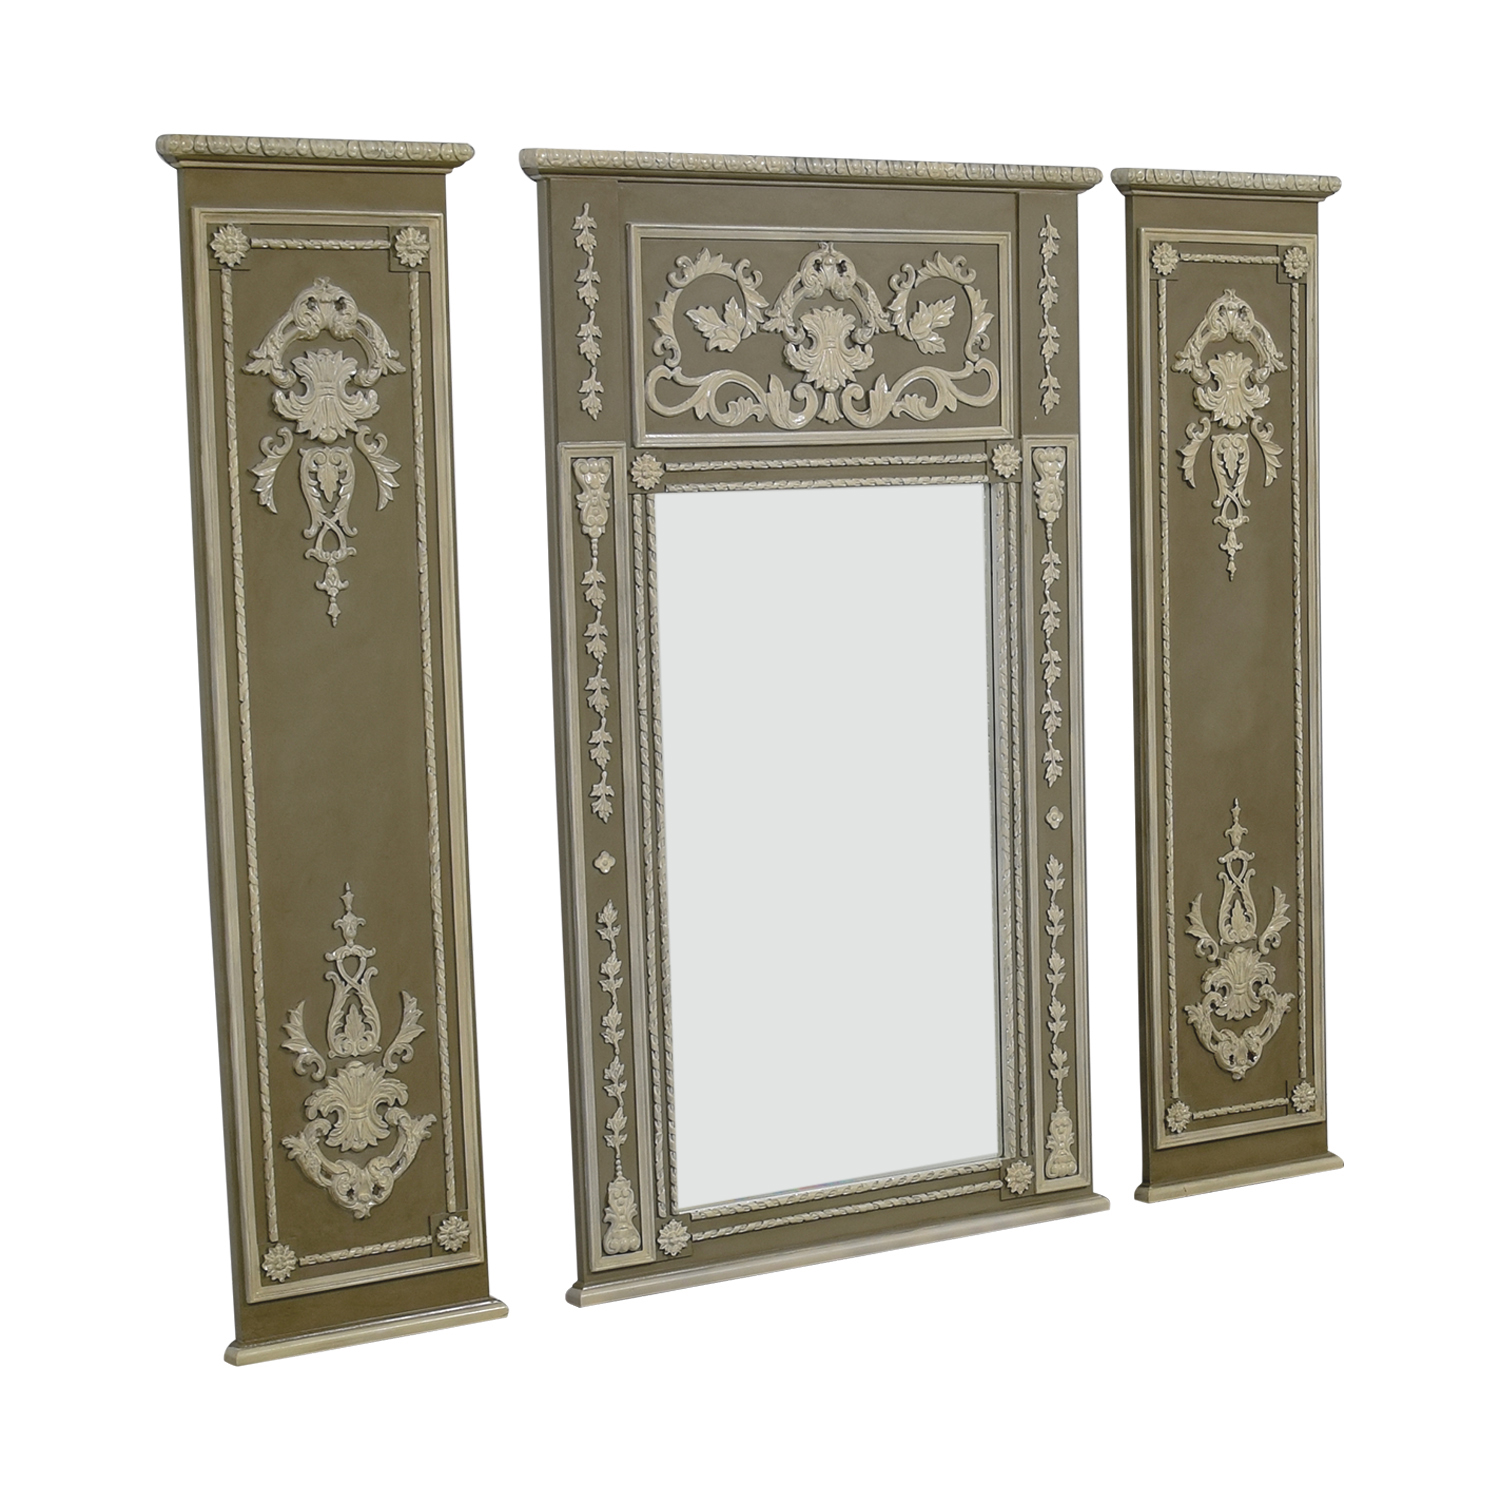 shop Trumeau Wall Mirror with Side Valance Panels